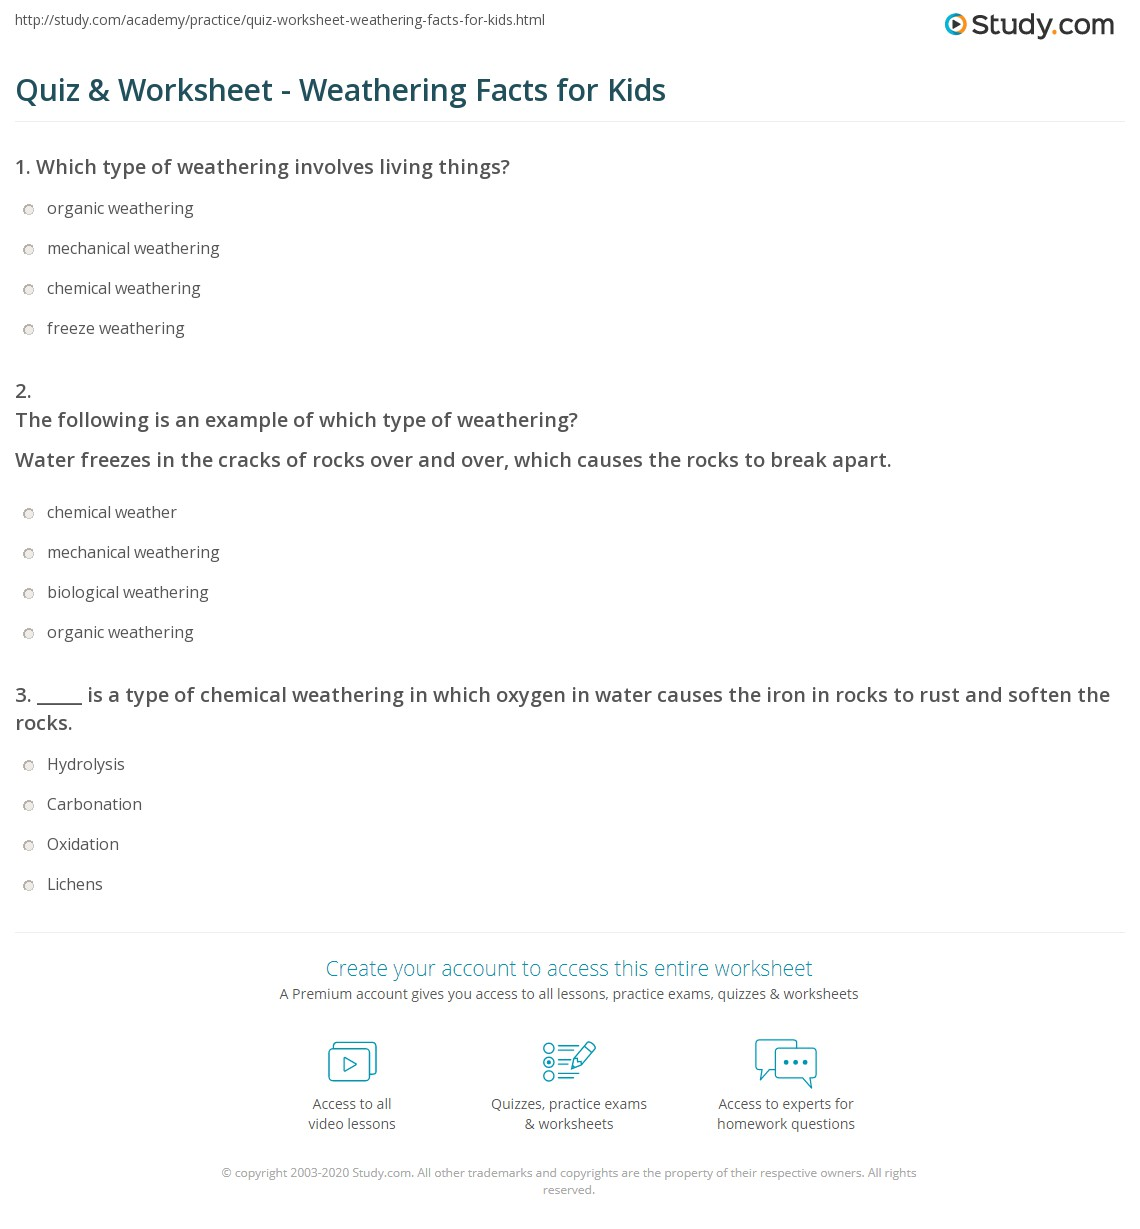 Quiz Worksheet Weathering Facts For Kids Study Com